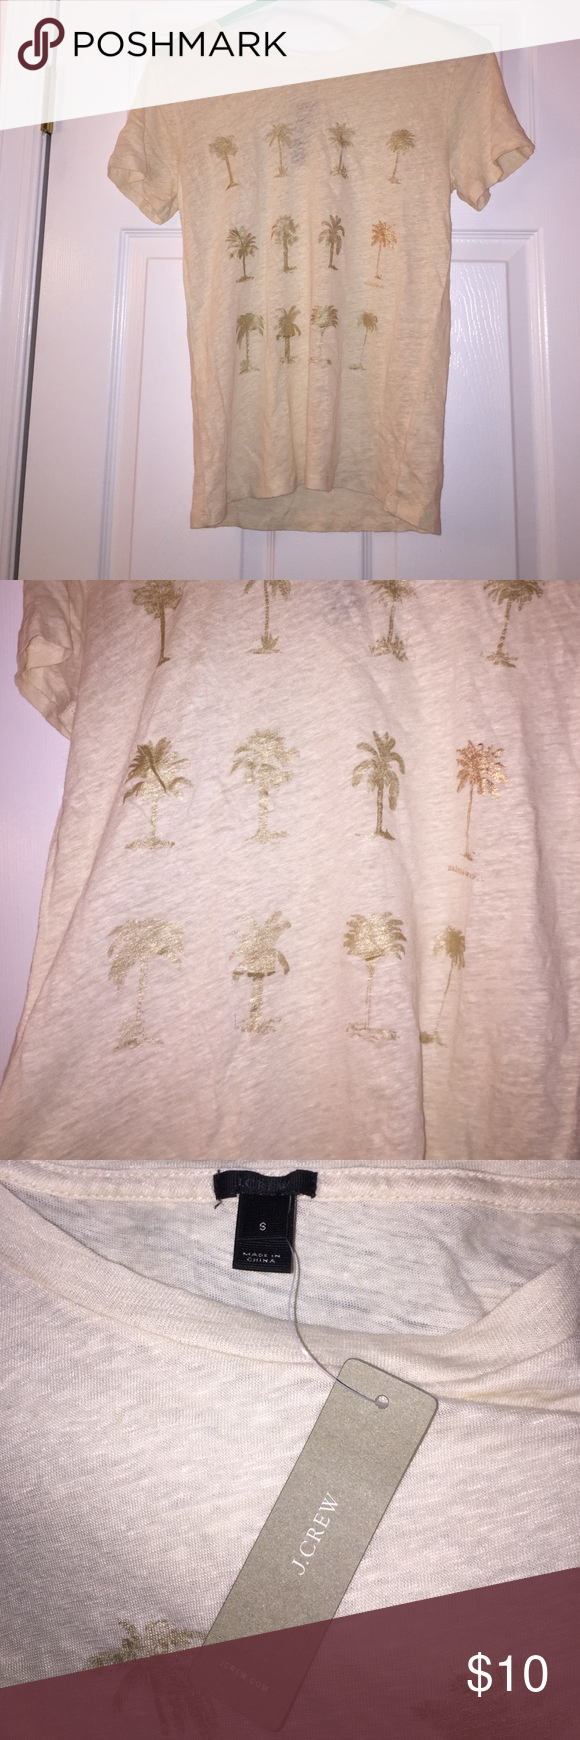 J.crew palm tree tee size small Size small - true to size - never worn with tags J. Crew Tops